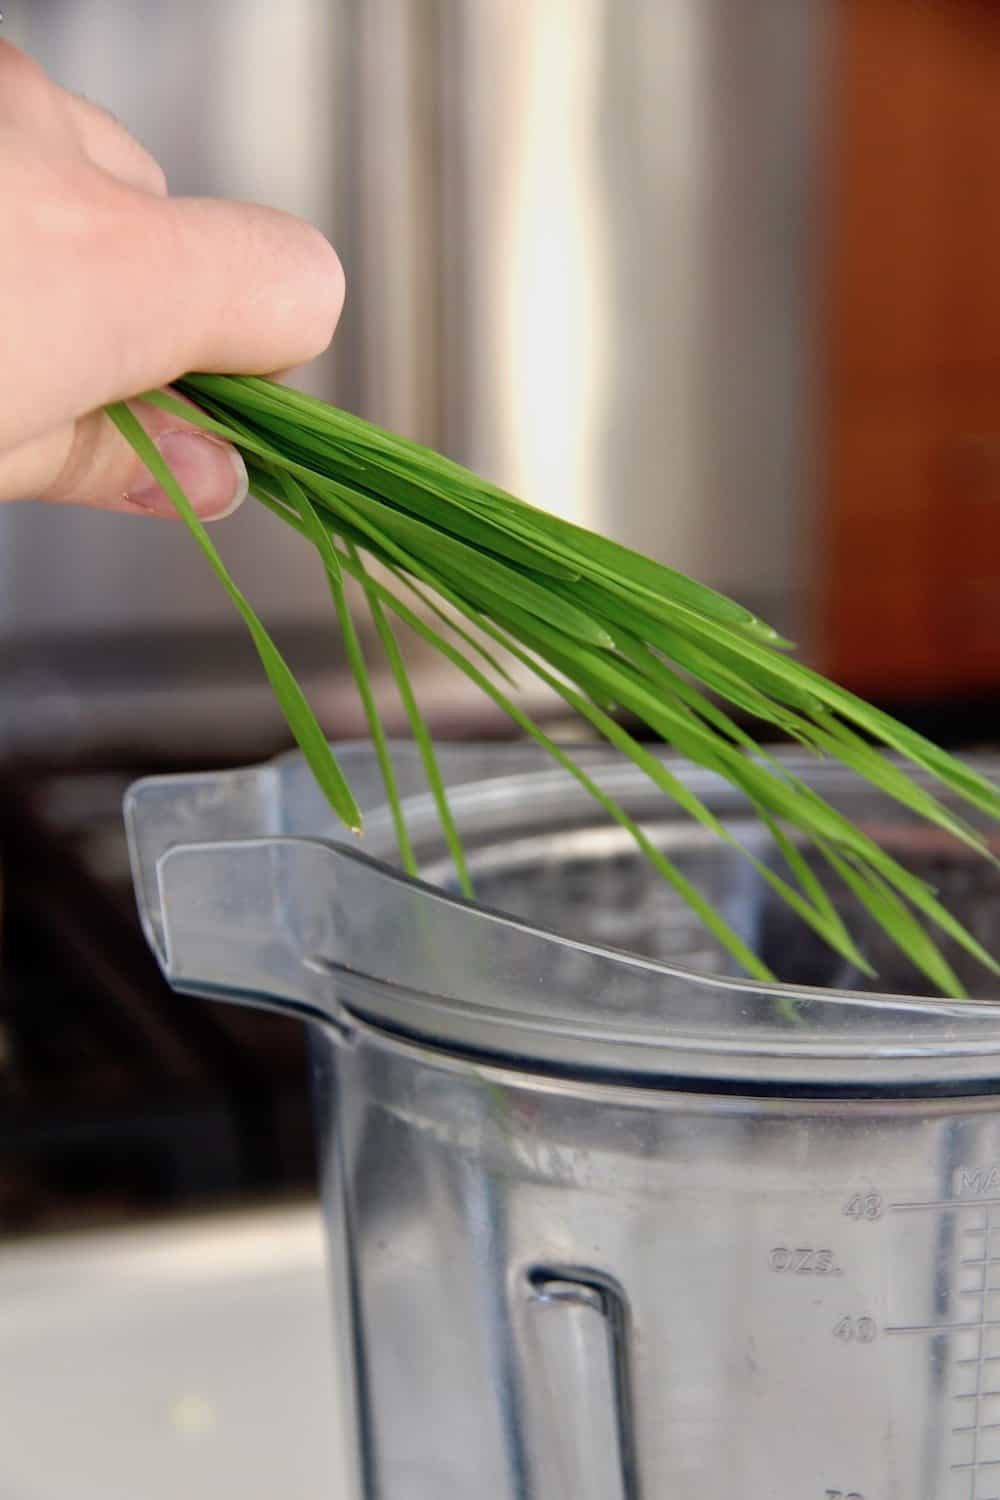 green wheatgrass blades being added to vitamix blender container